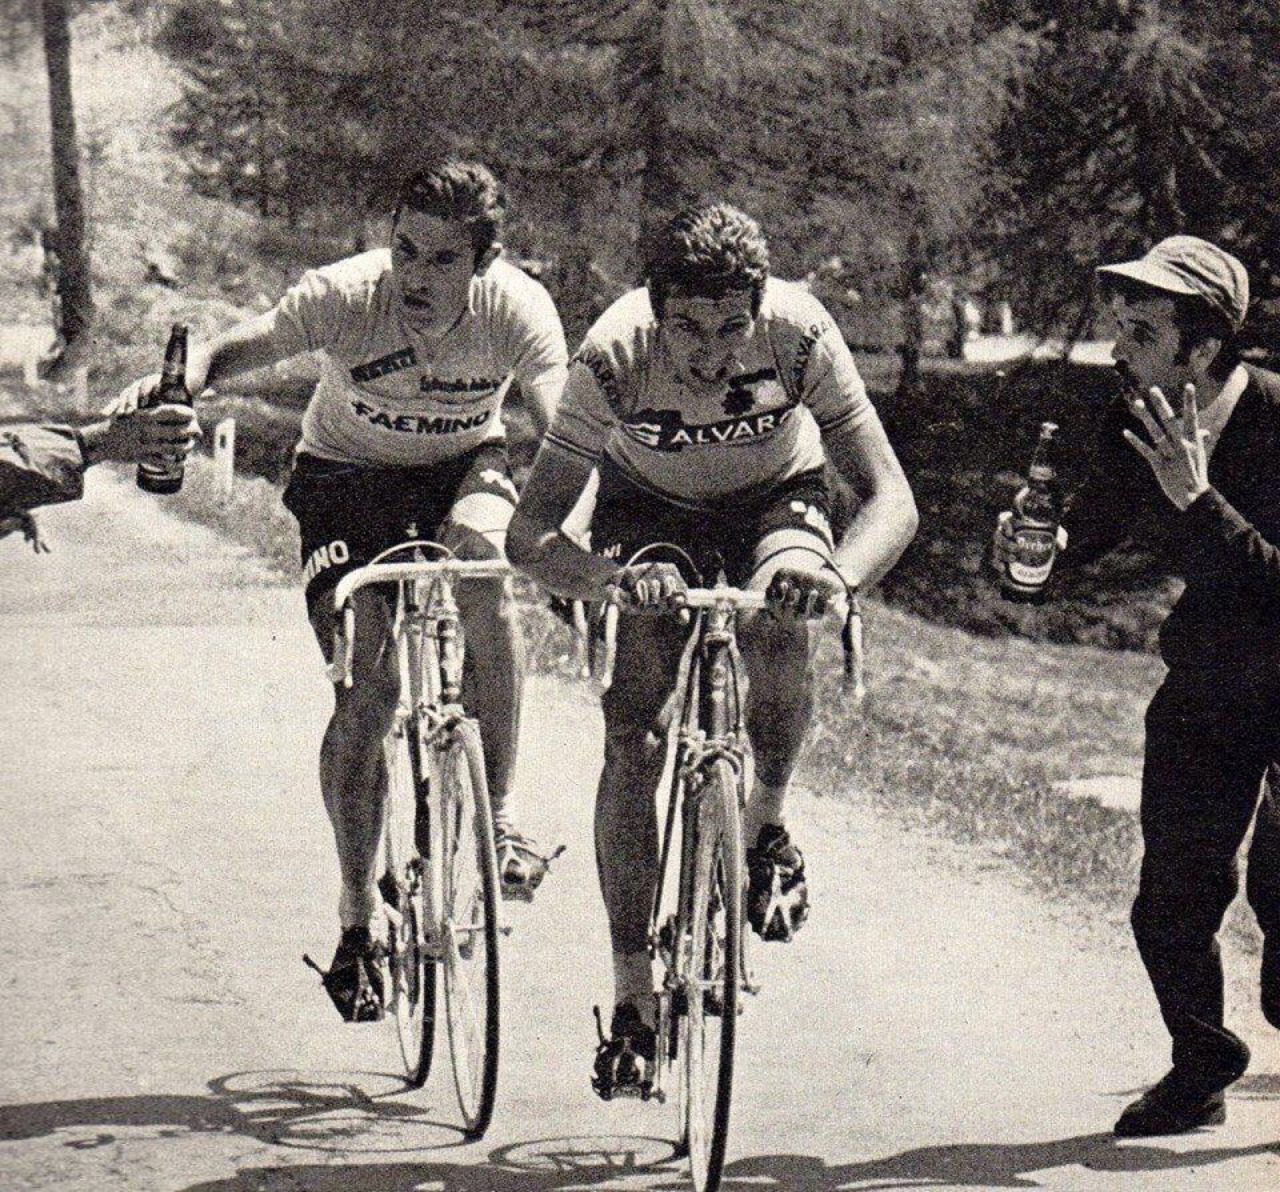 Merckx is crushing so hard he doesn't give an F if that's water or if that's beer.